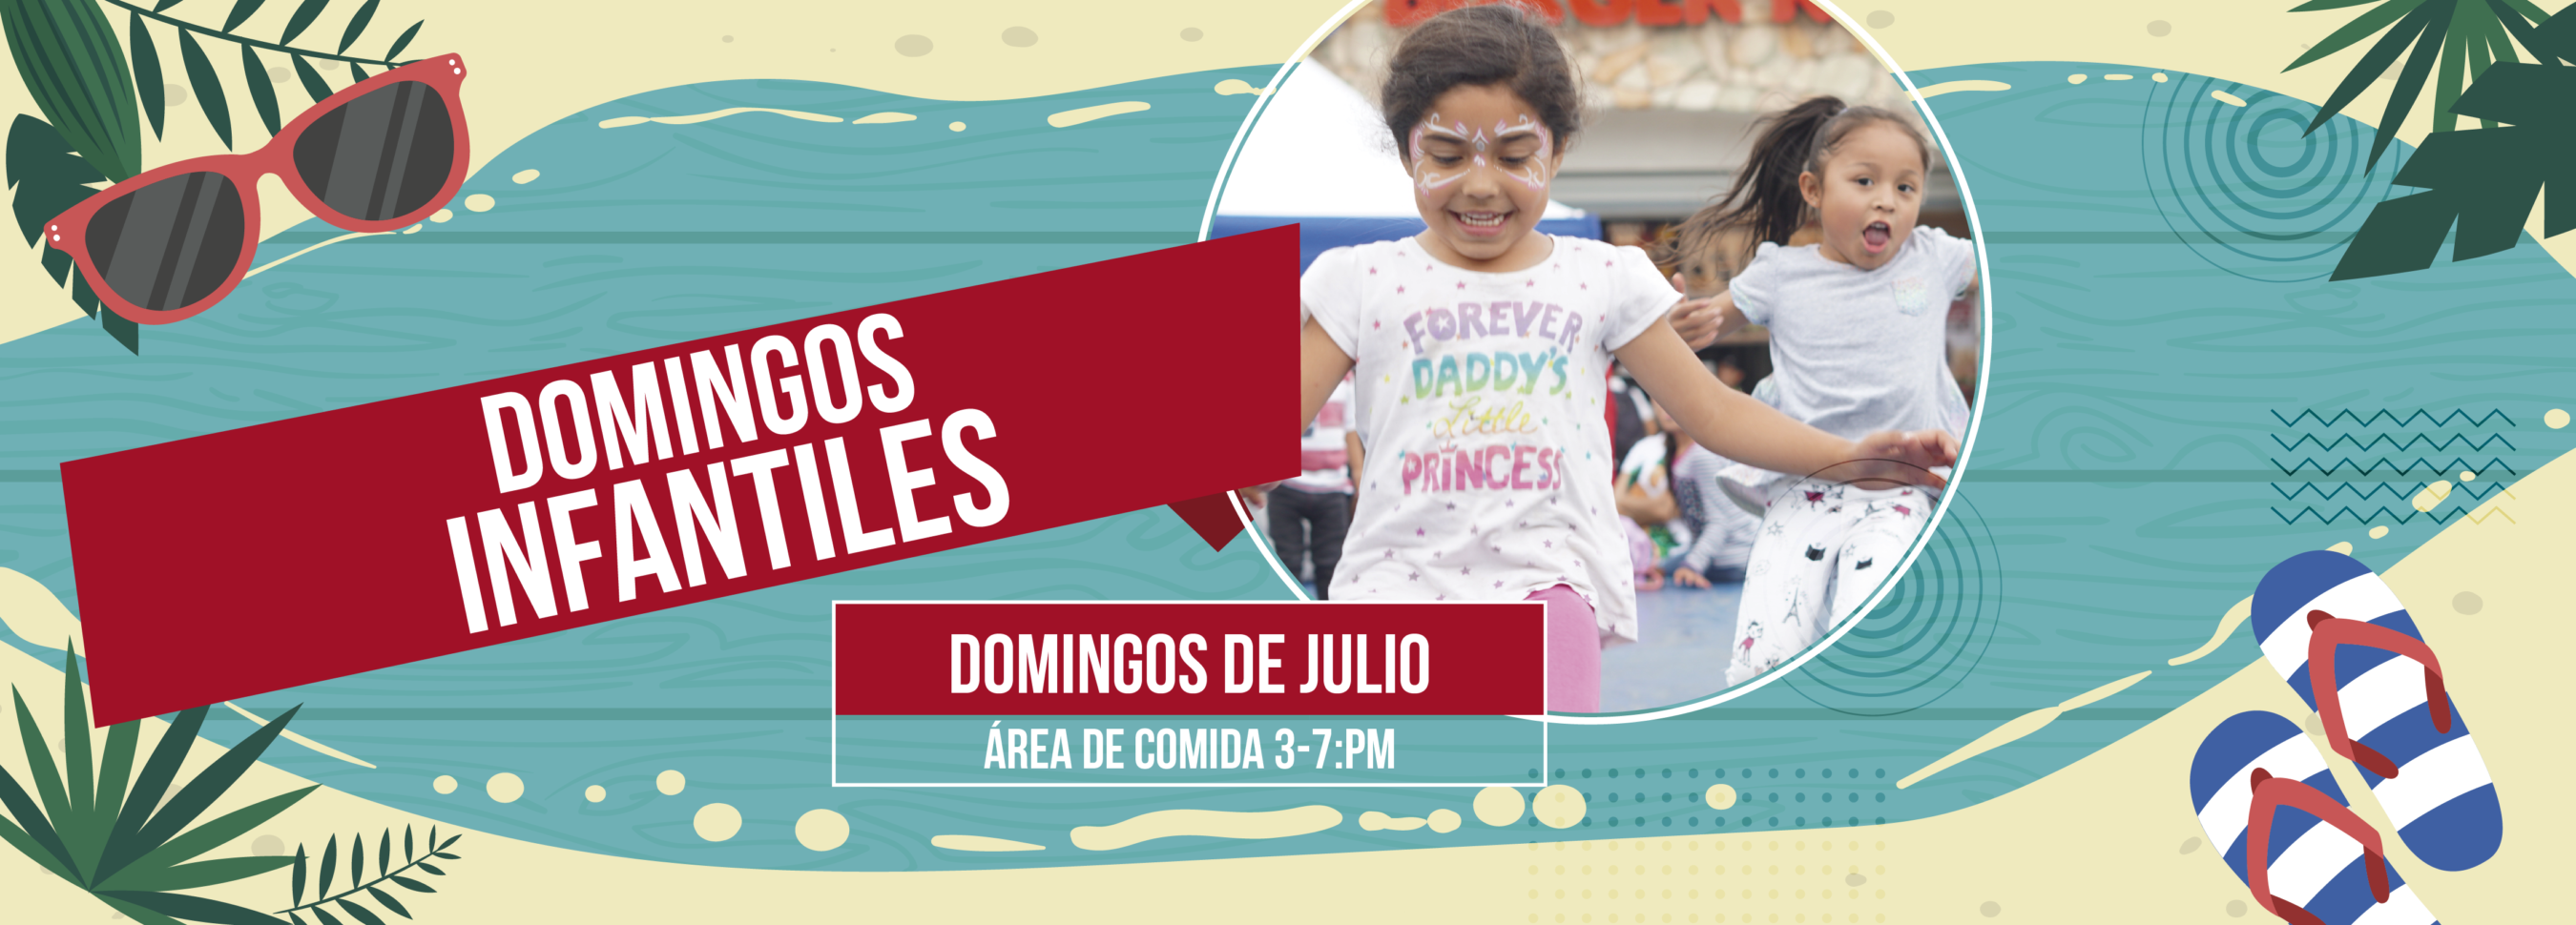 banners julio-03